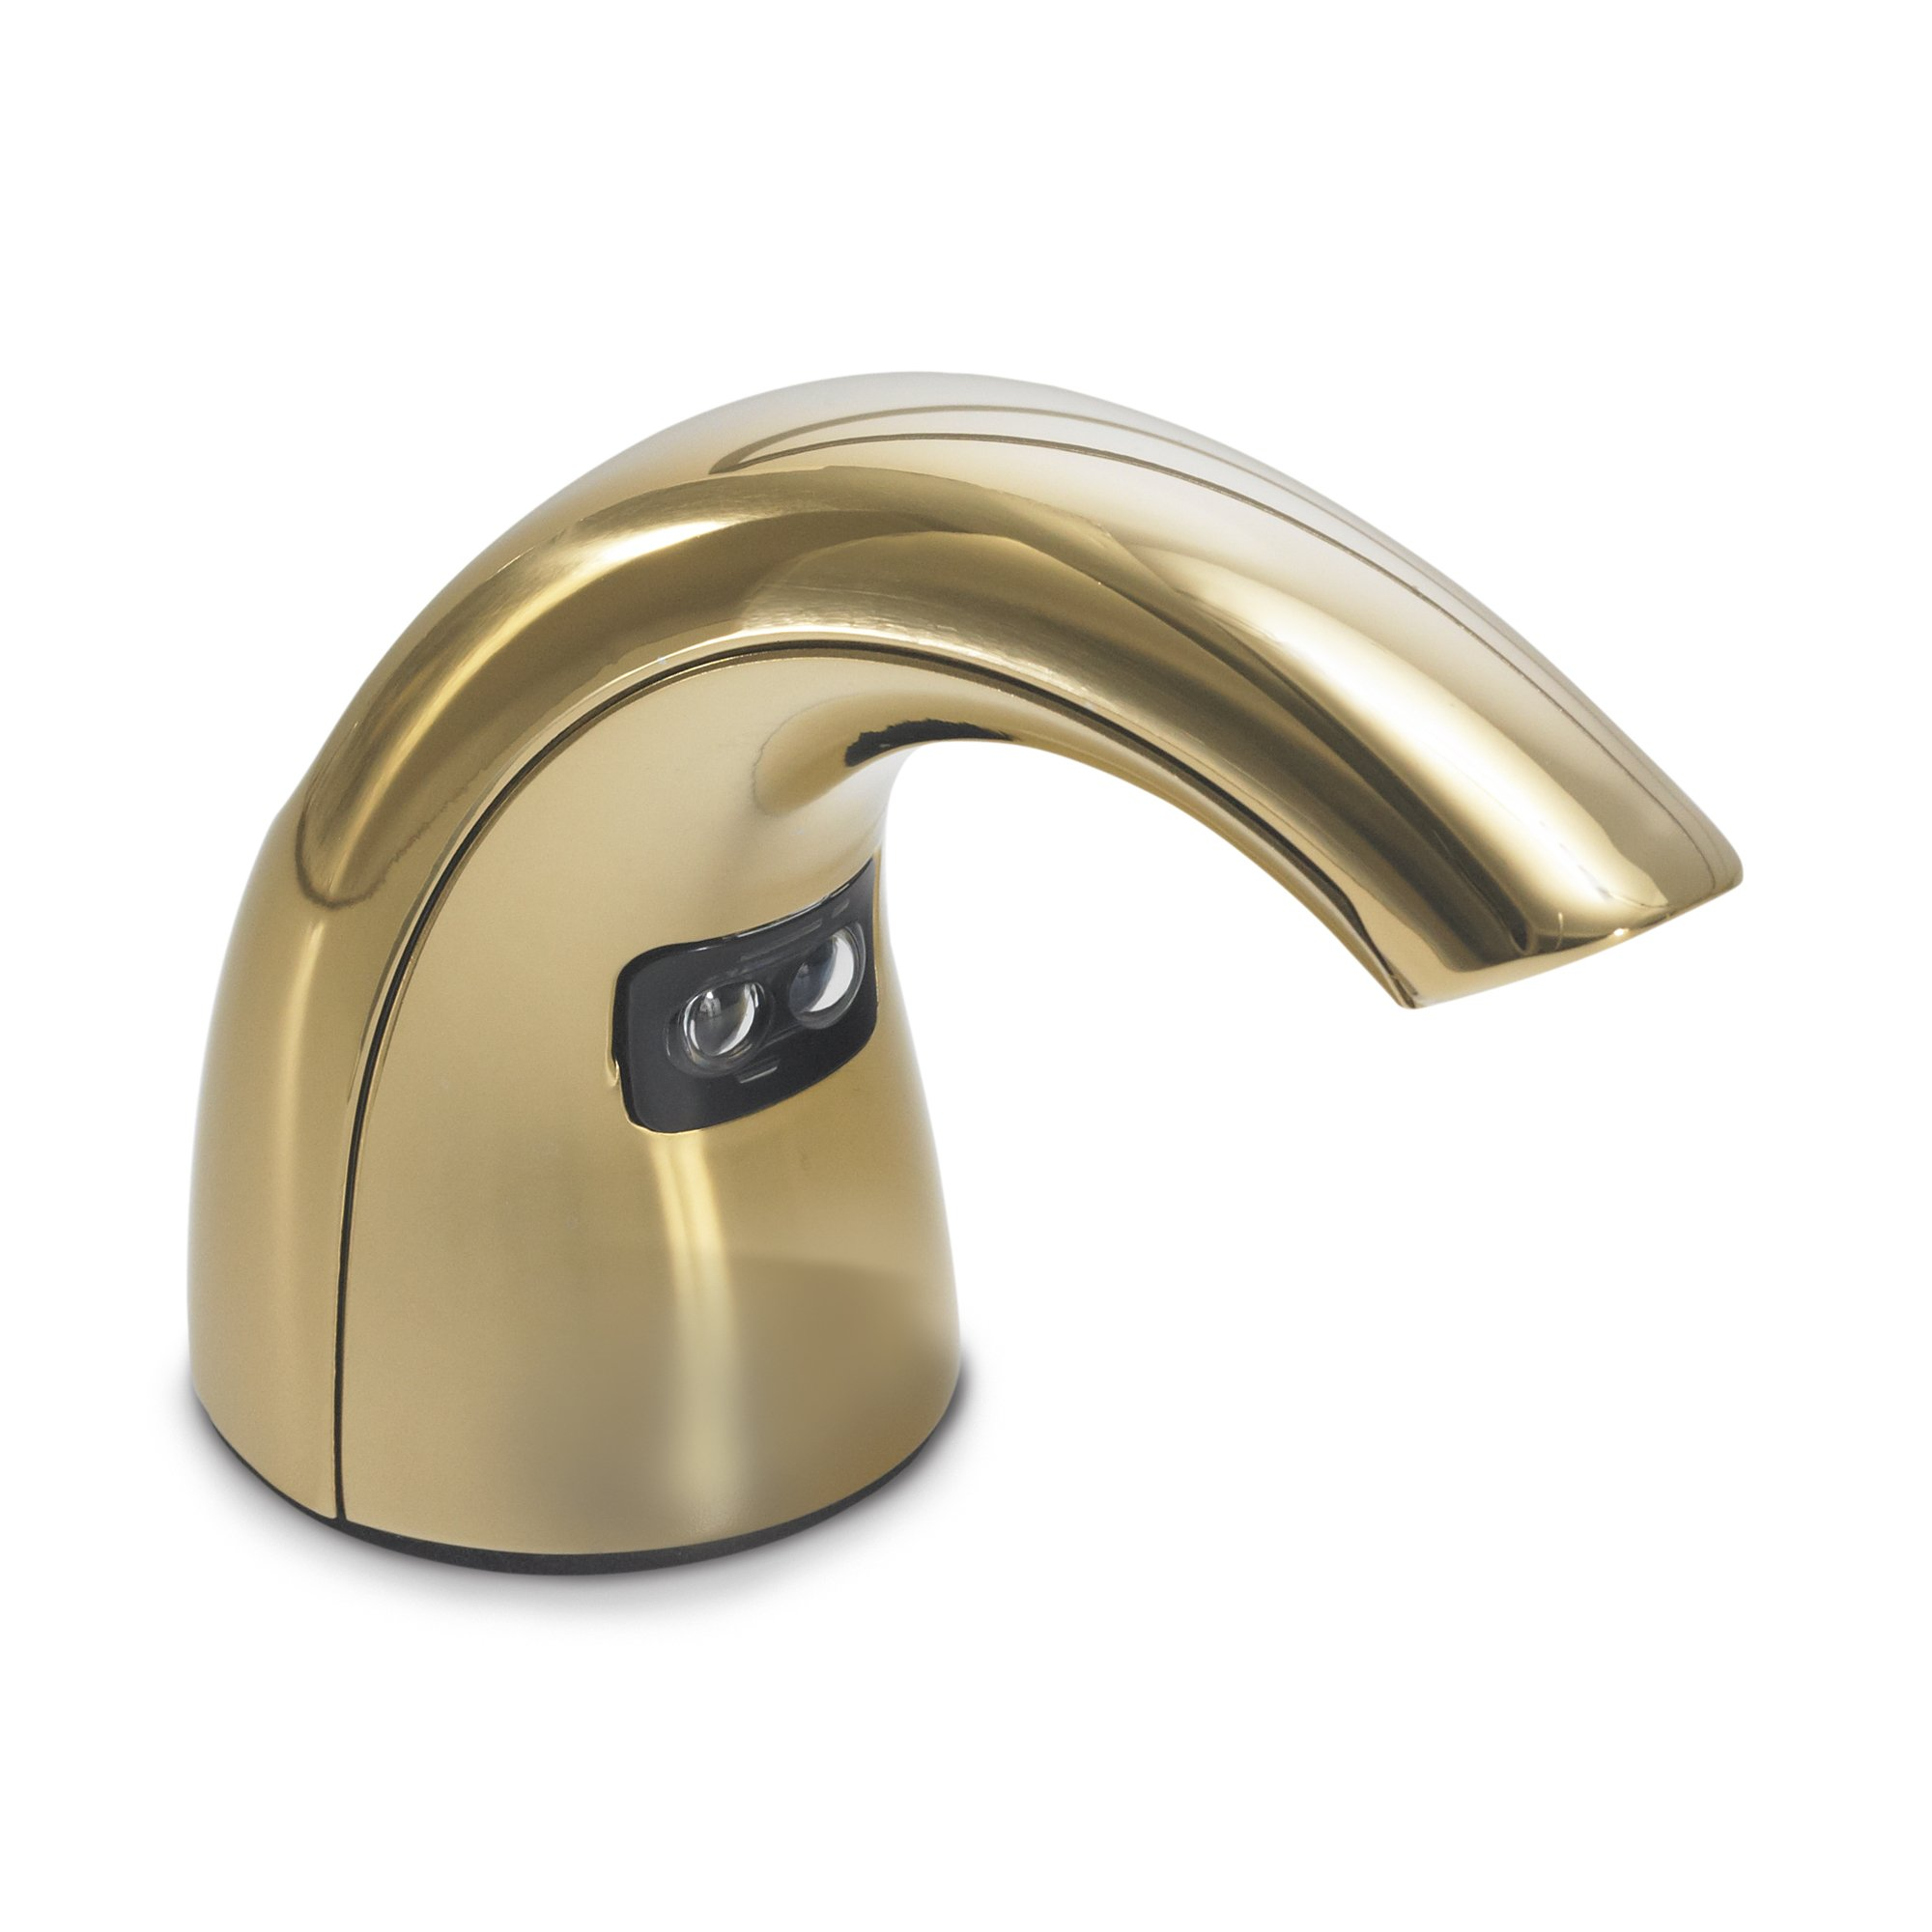 GOJO 8560-01 CXT Touch Free Counter Mount Dispensing System, Gold Tone